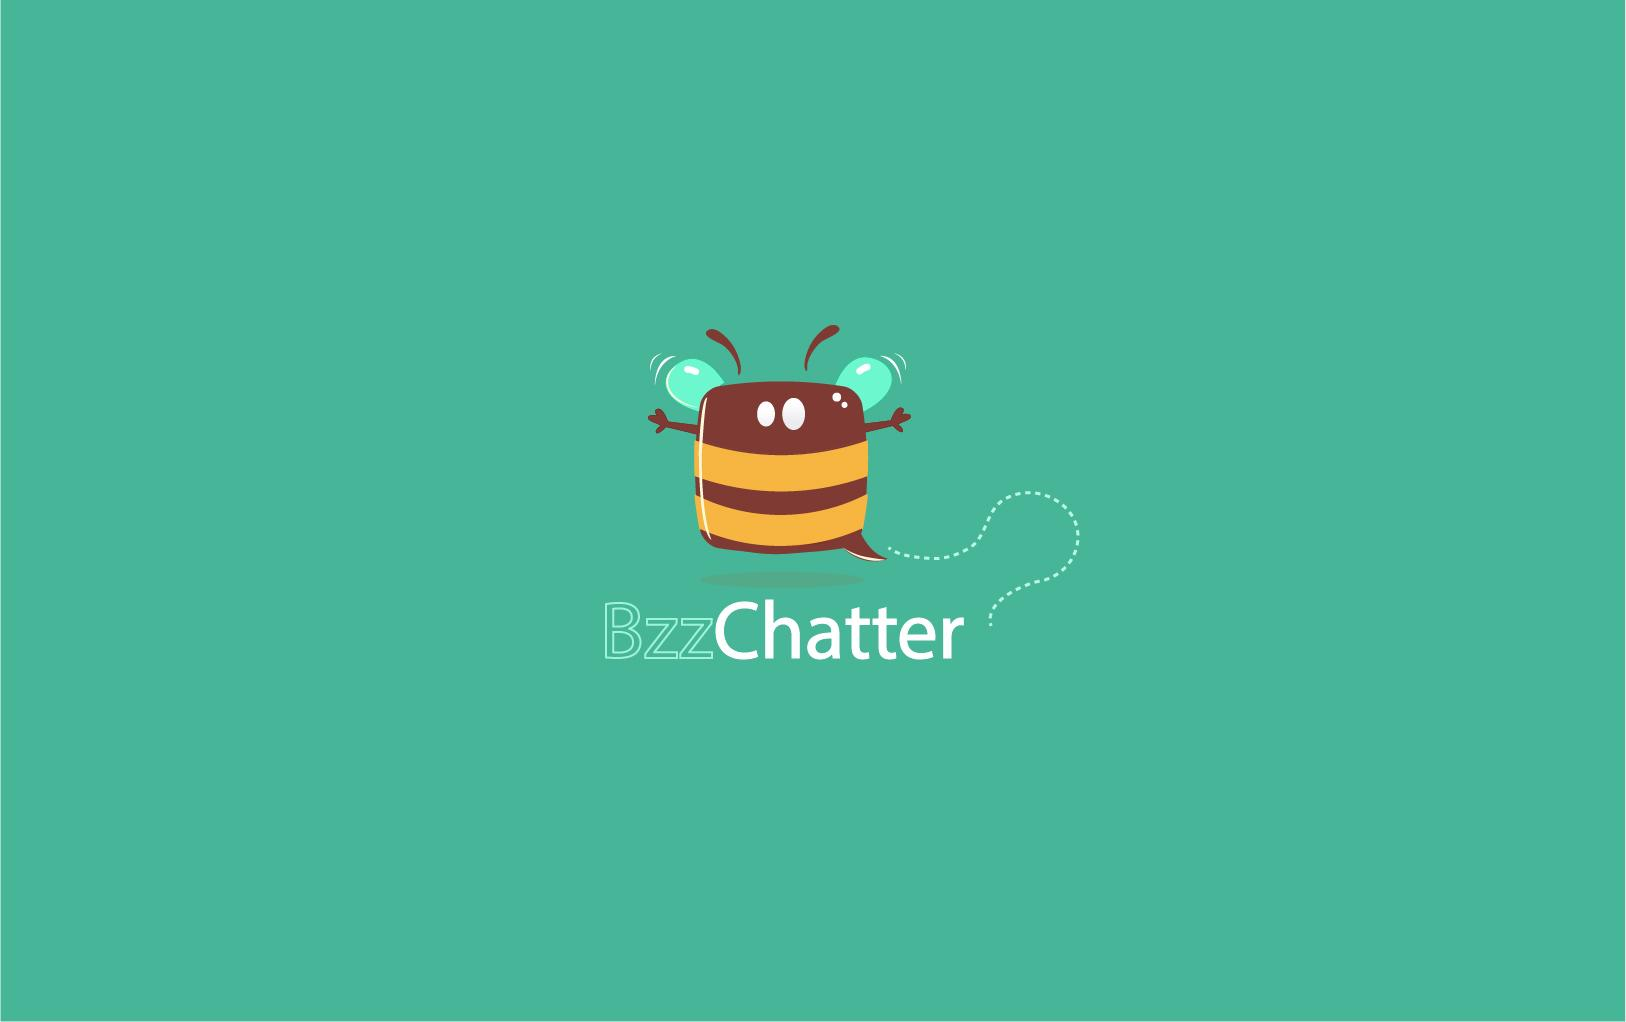 BzzChatter will go live in early or mid-February.